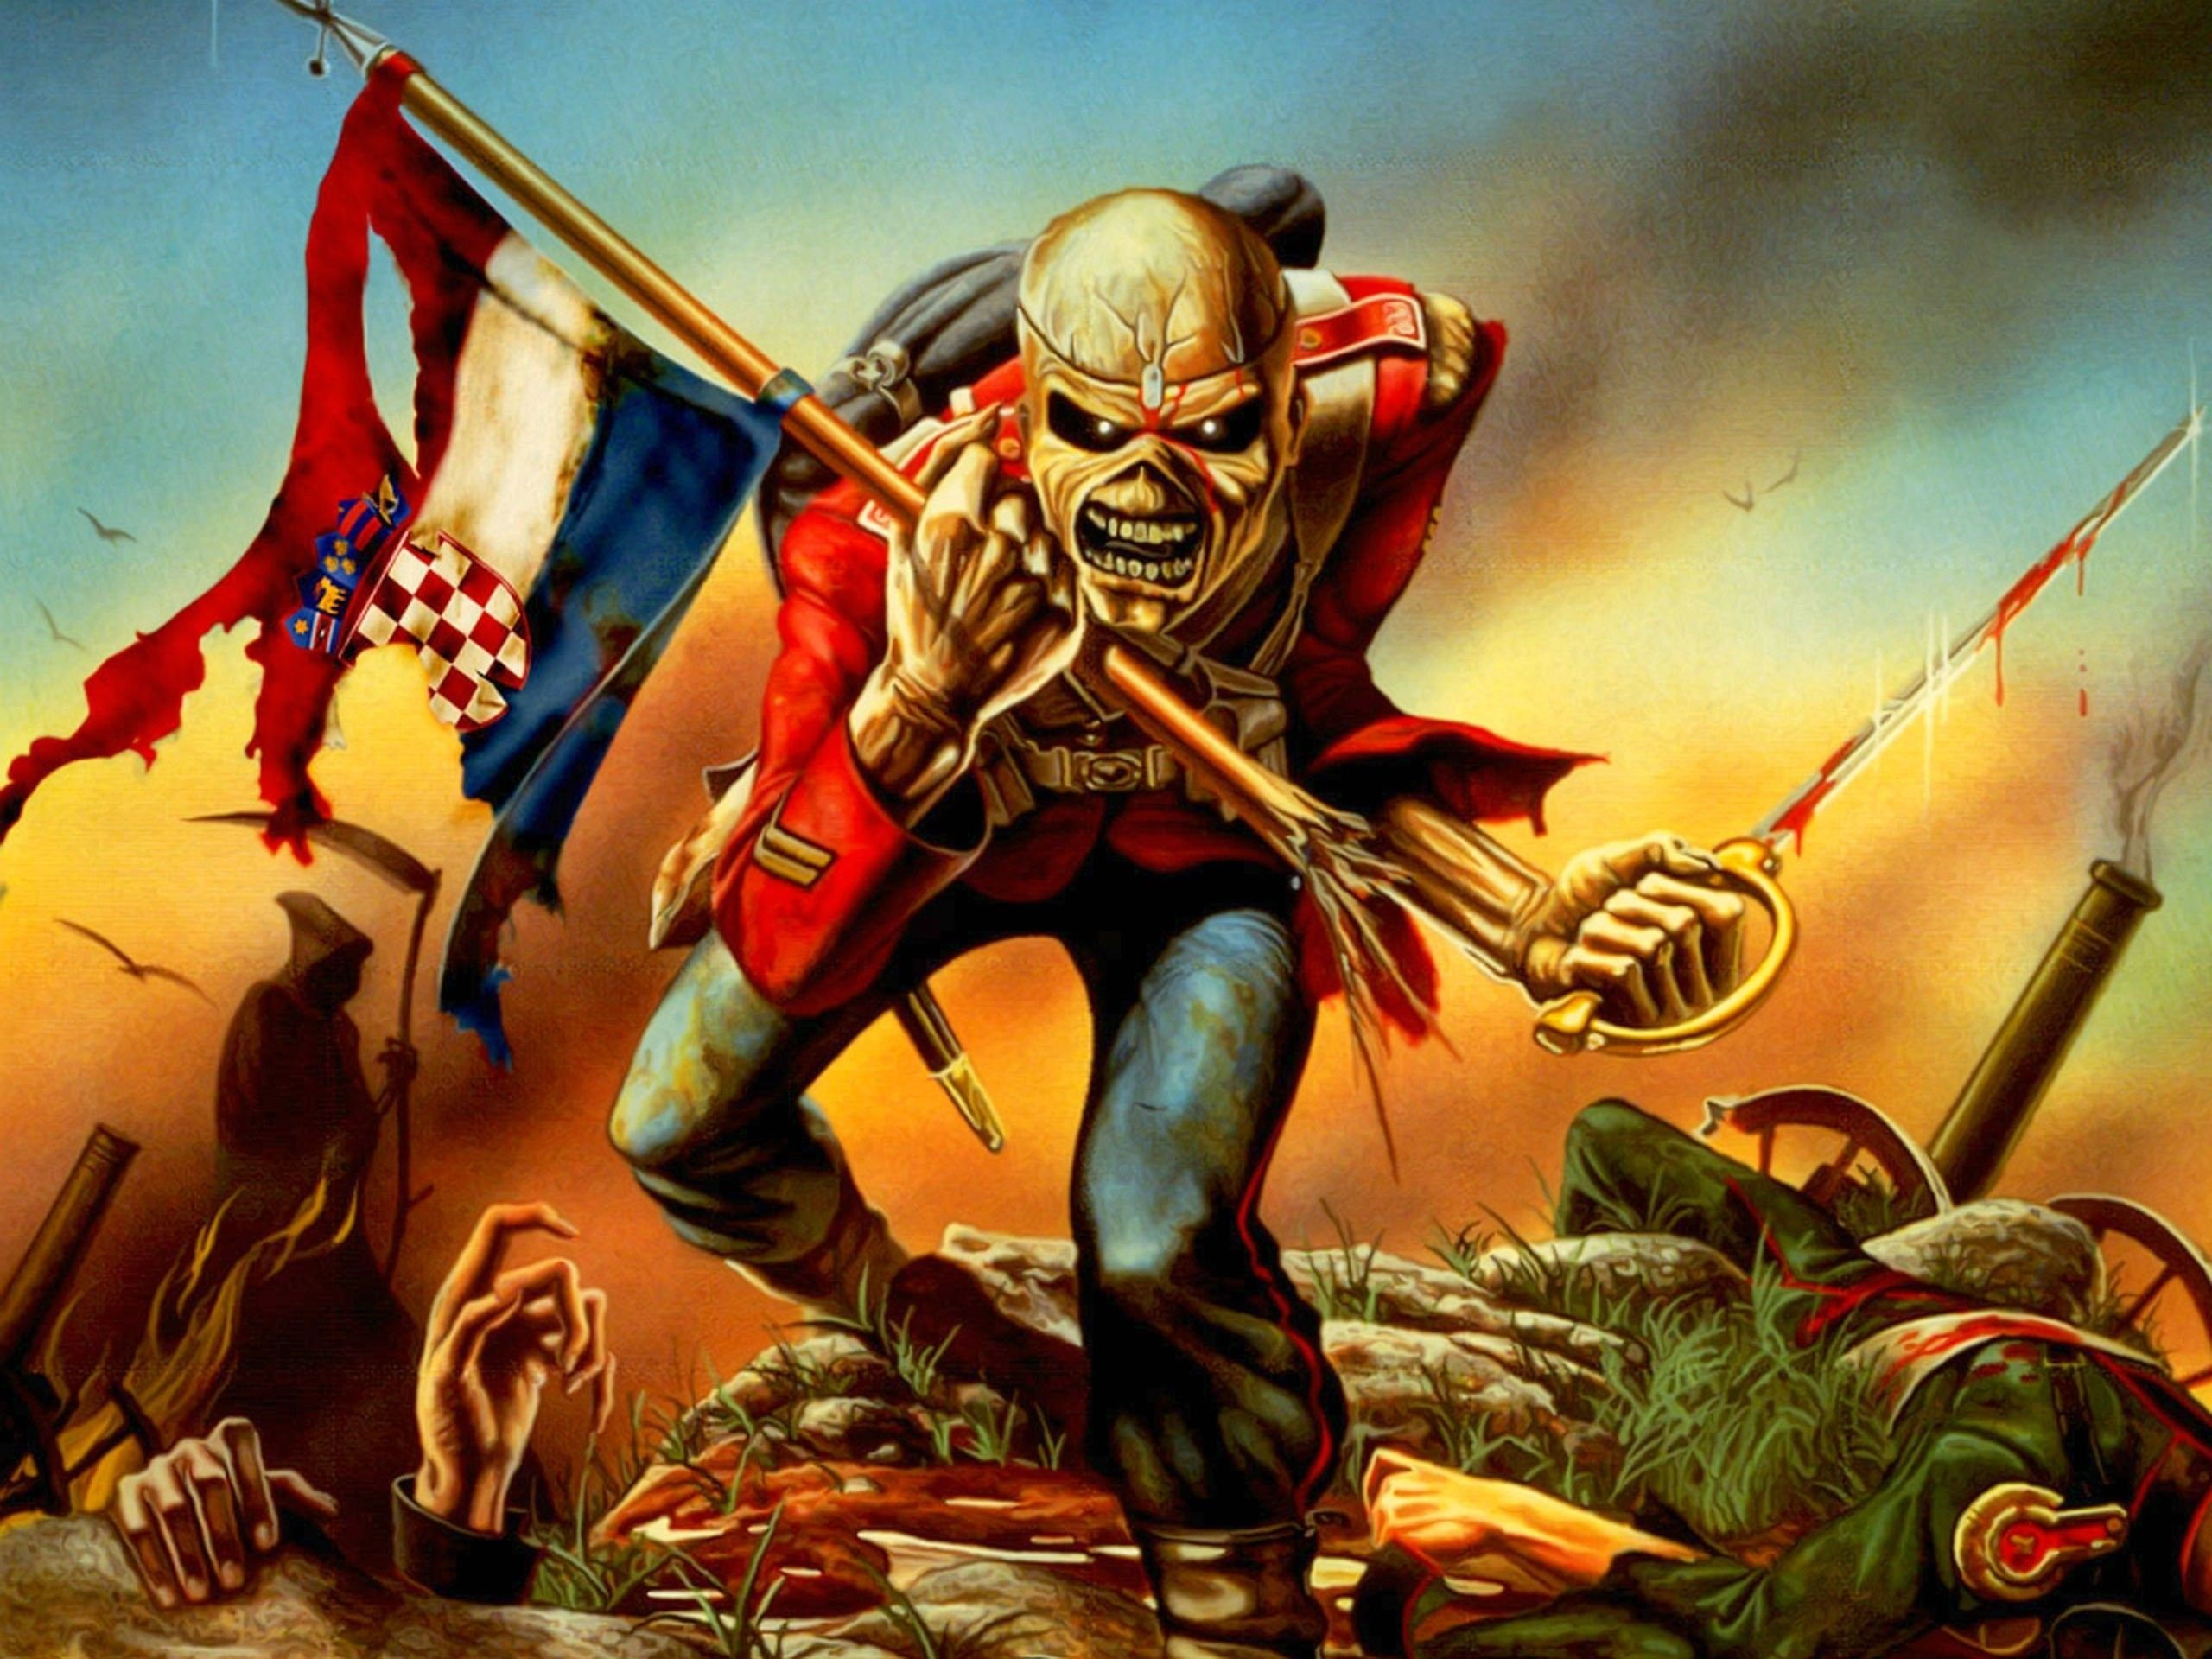 New Iron Maiden Images Free Download Di 2020